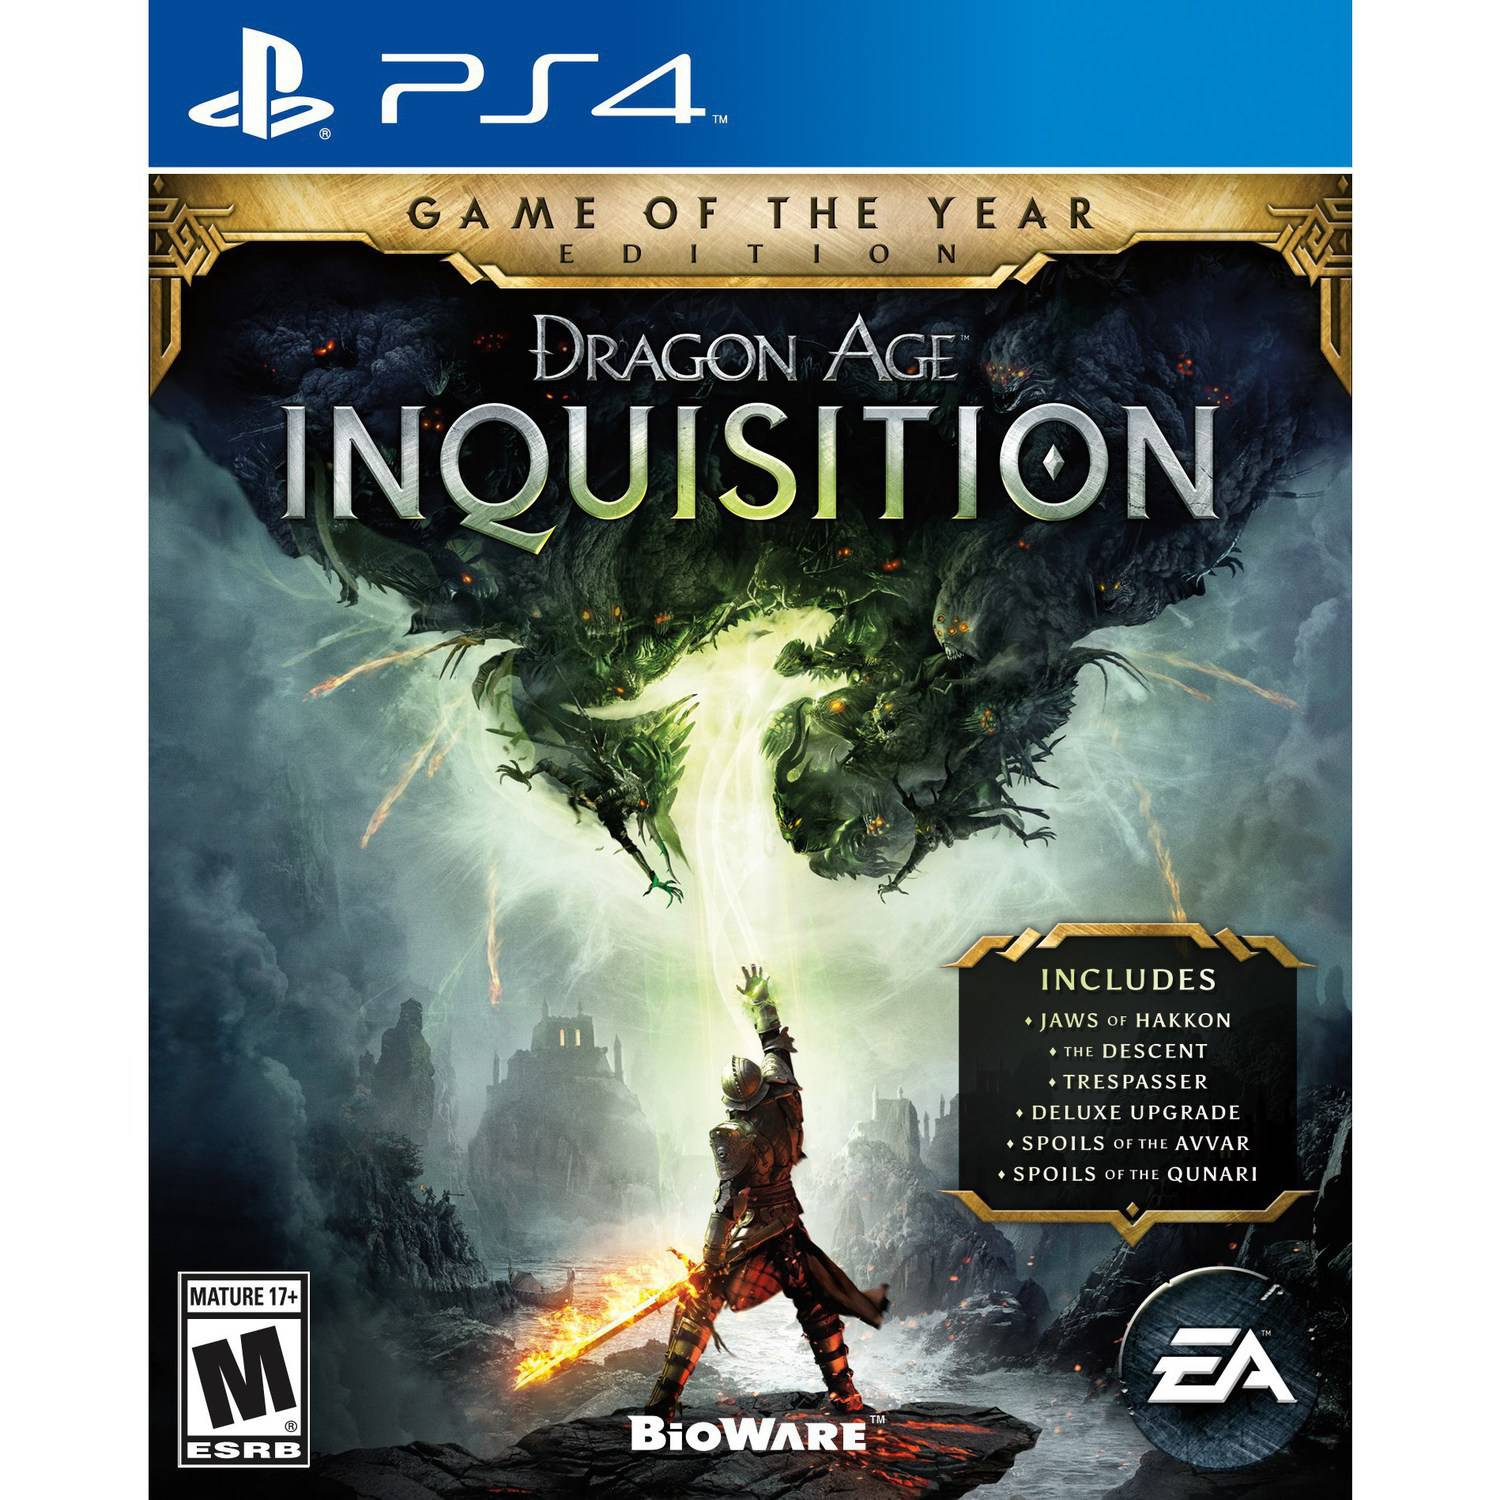 Dragon Age Inquisition Game of the Year Edition (PS4)